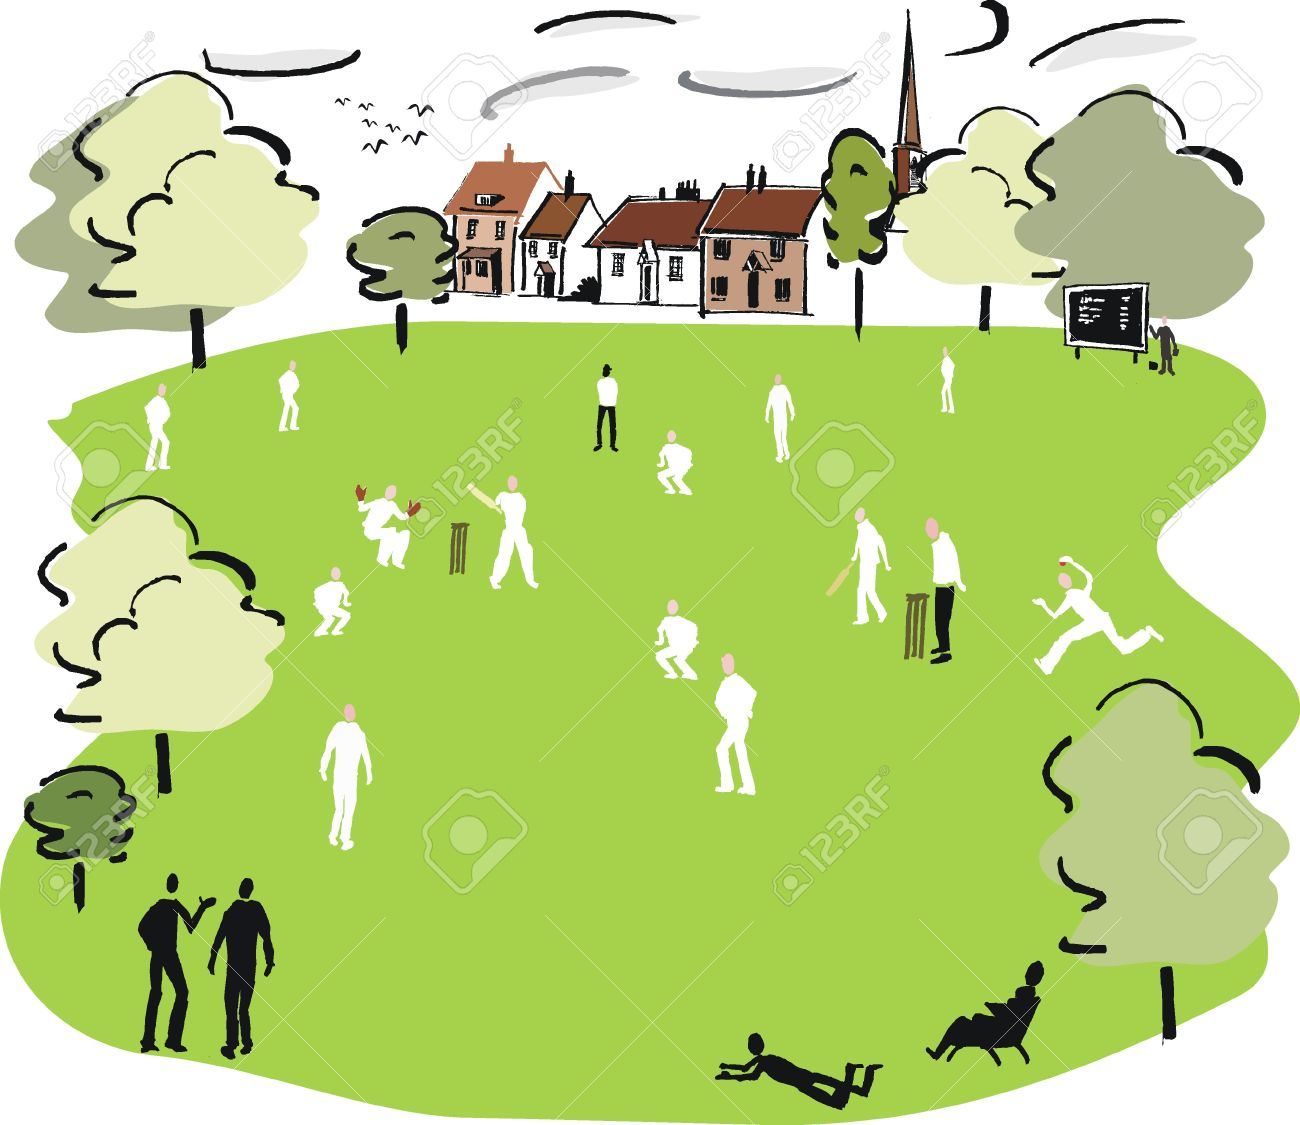 Cricket Match Illustration Royalty Free Cliparts, Vectors, And.